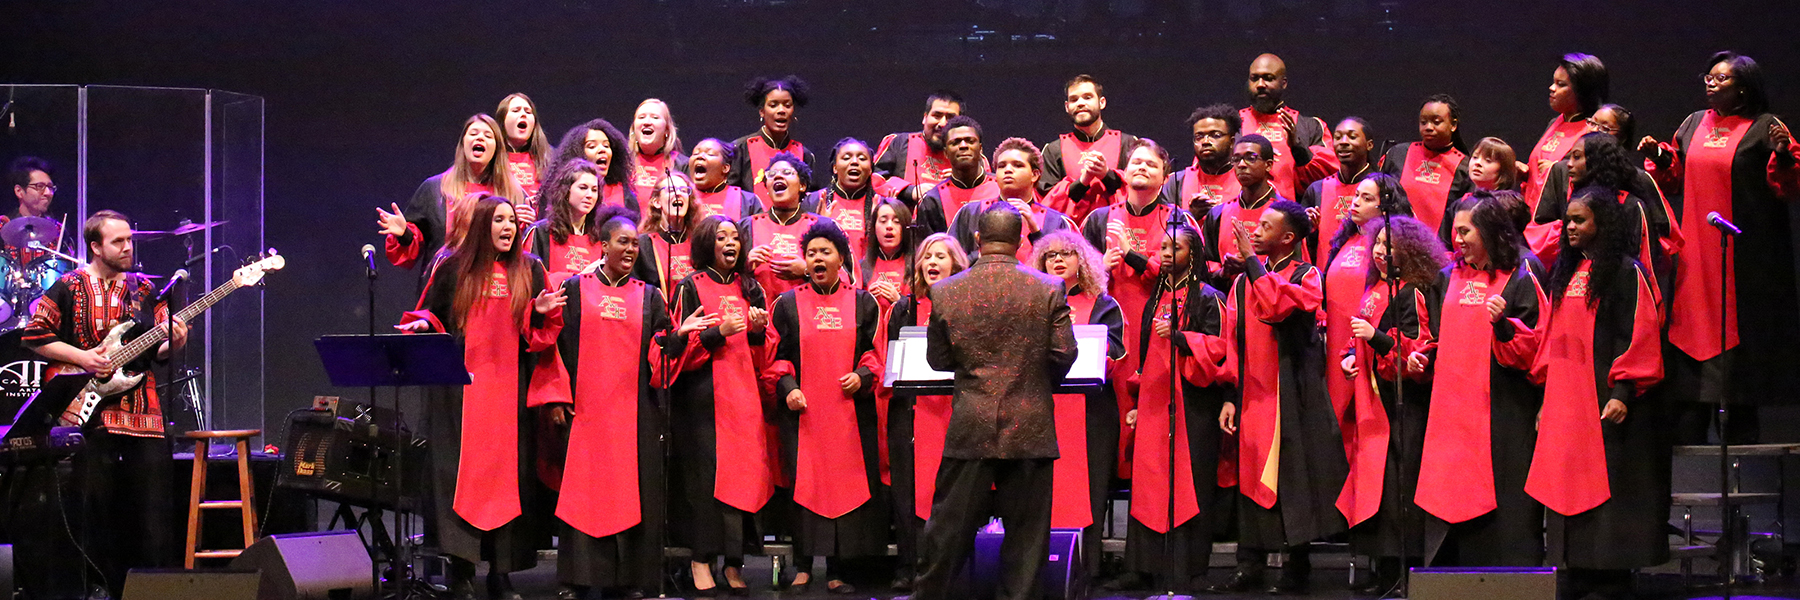 The African American Choral Ensemble performs onstage during the 2018 Spring Concert